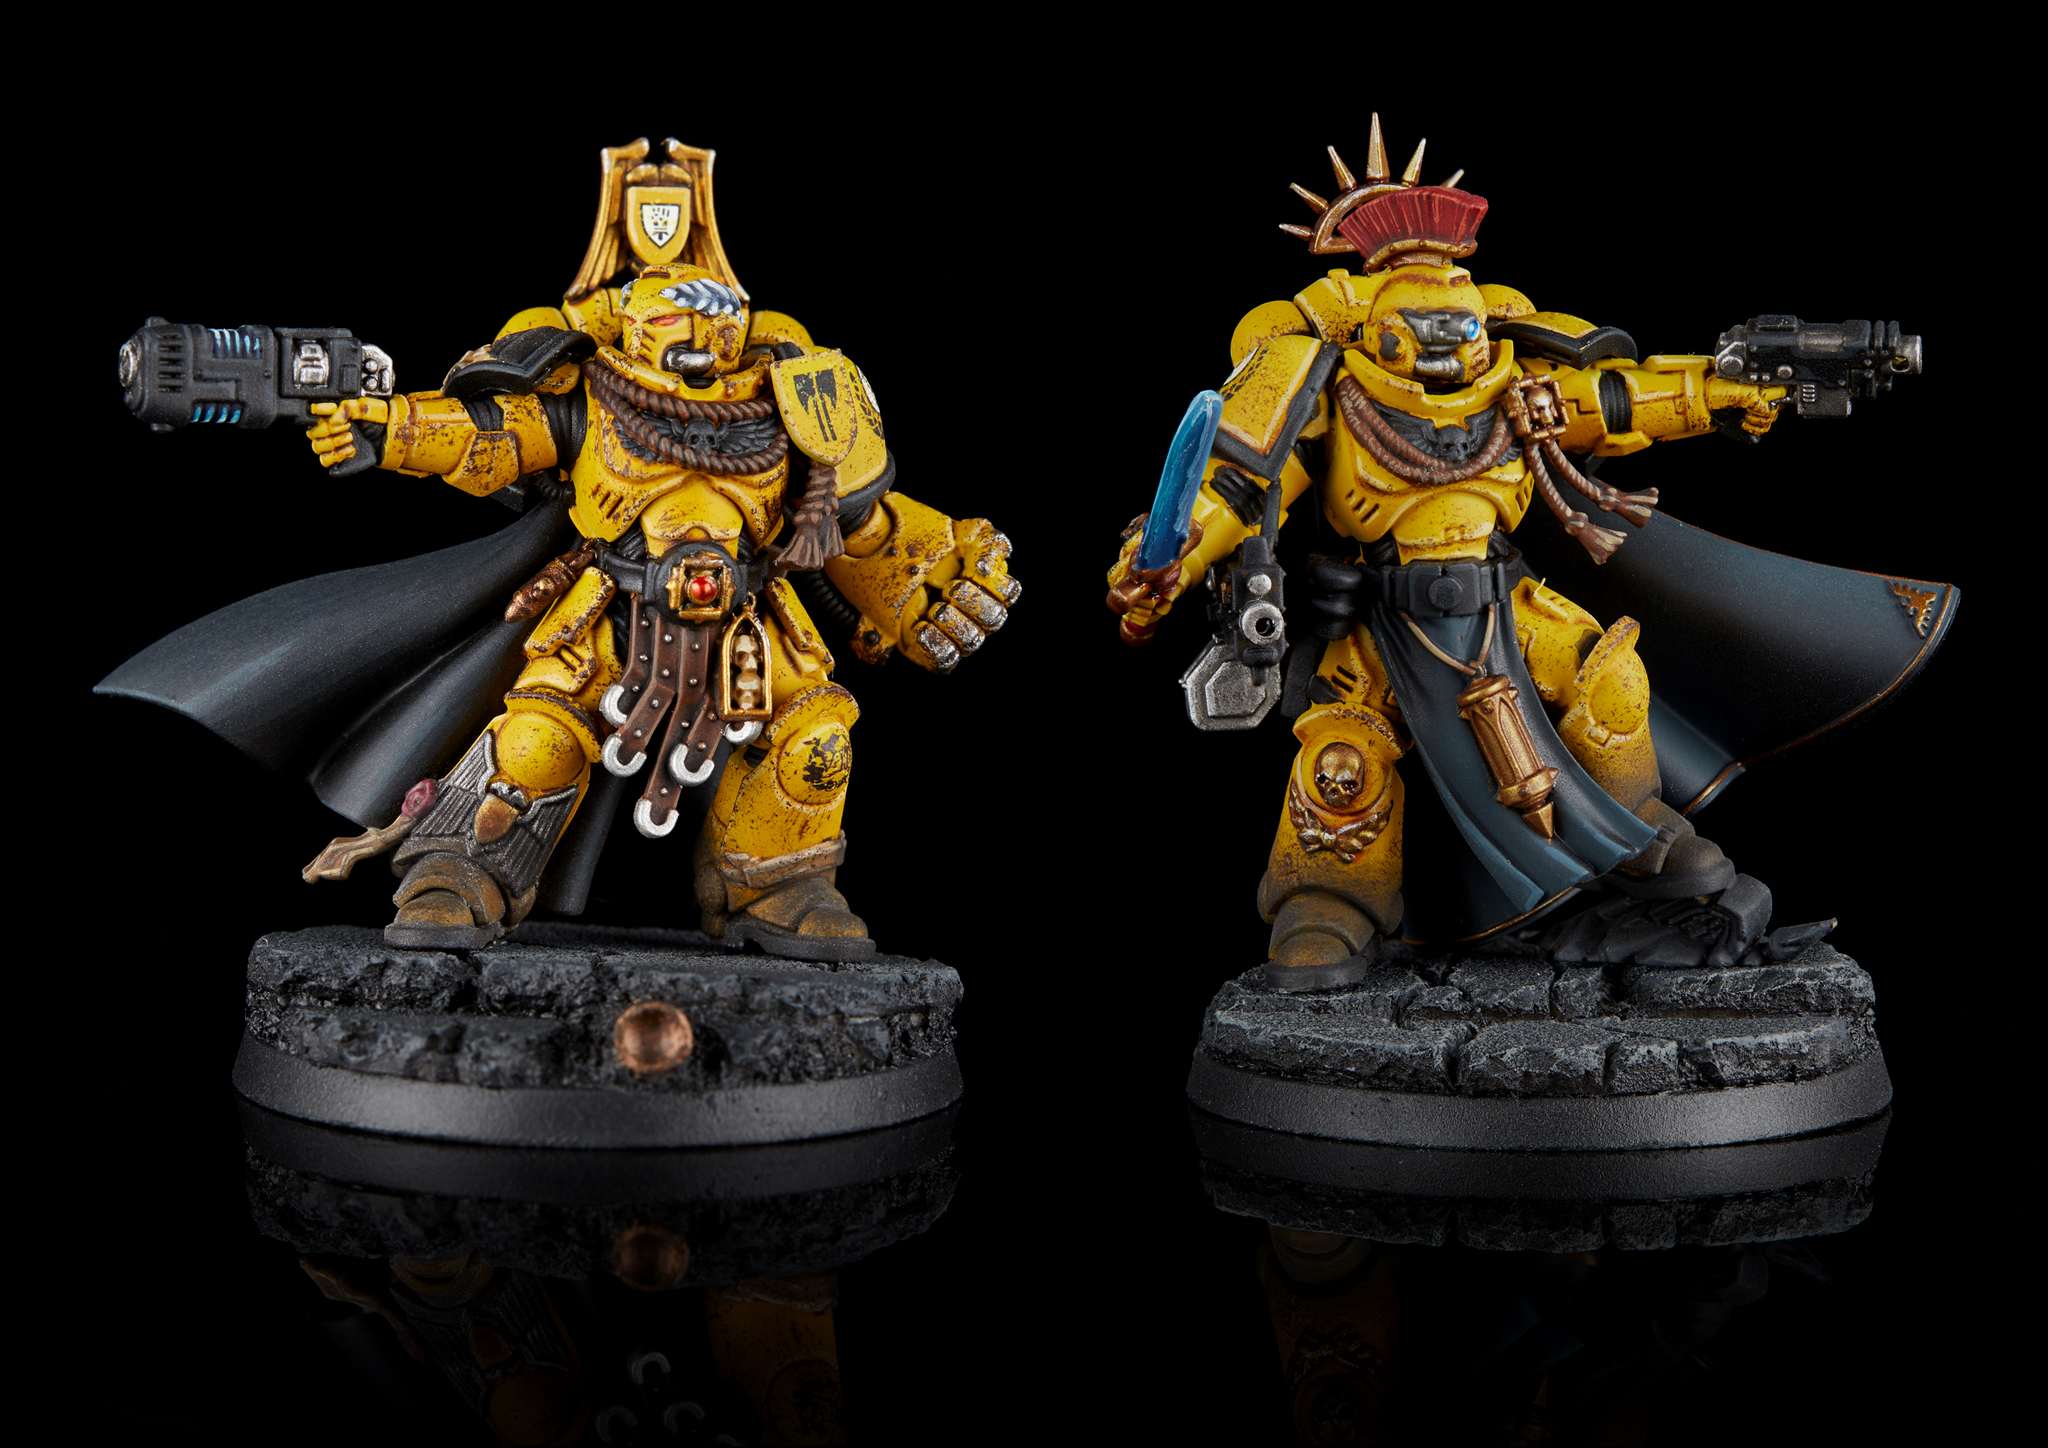 Review Roundup – Imperial Fists, Salamanders and Aeldari – Goonhammer